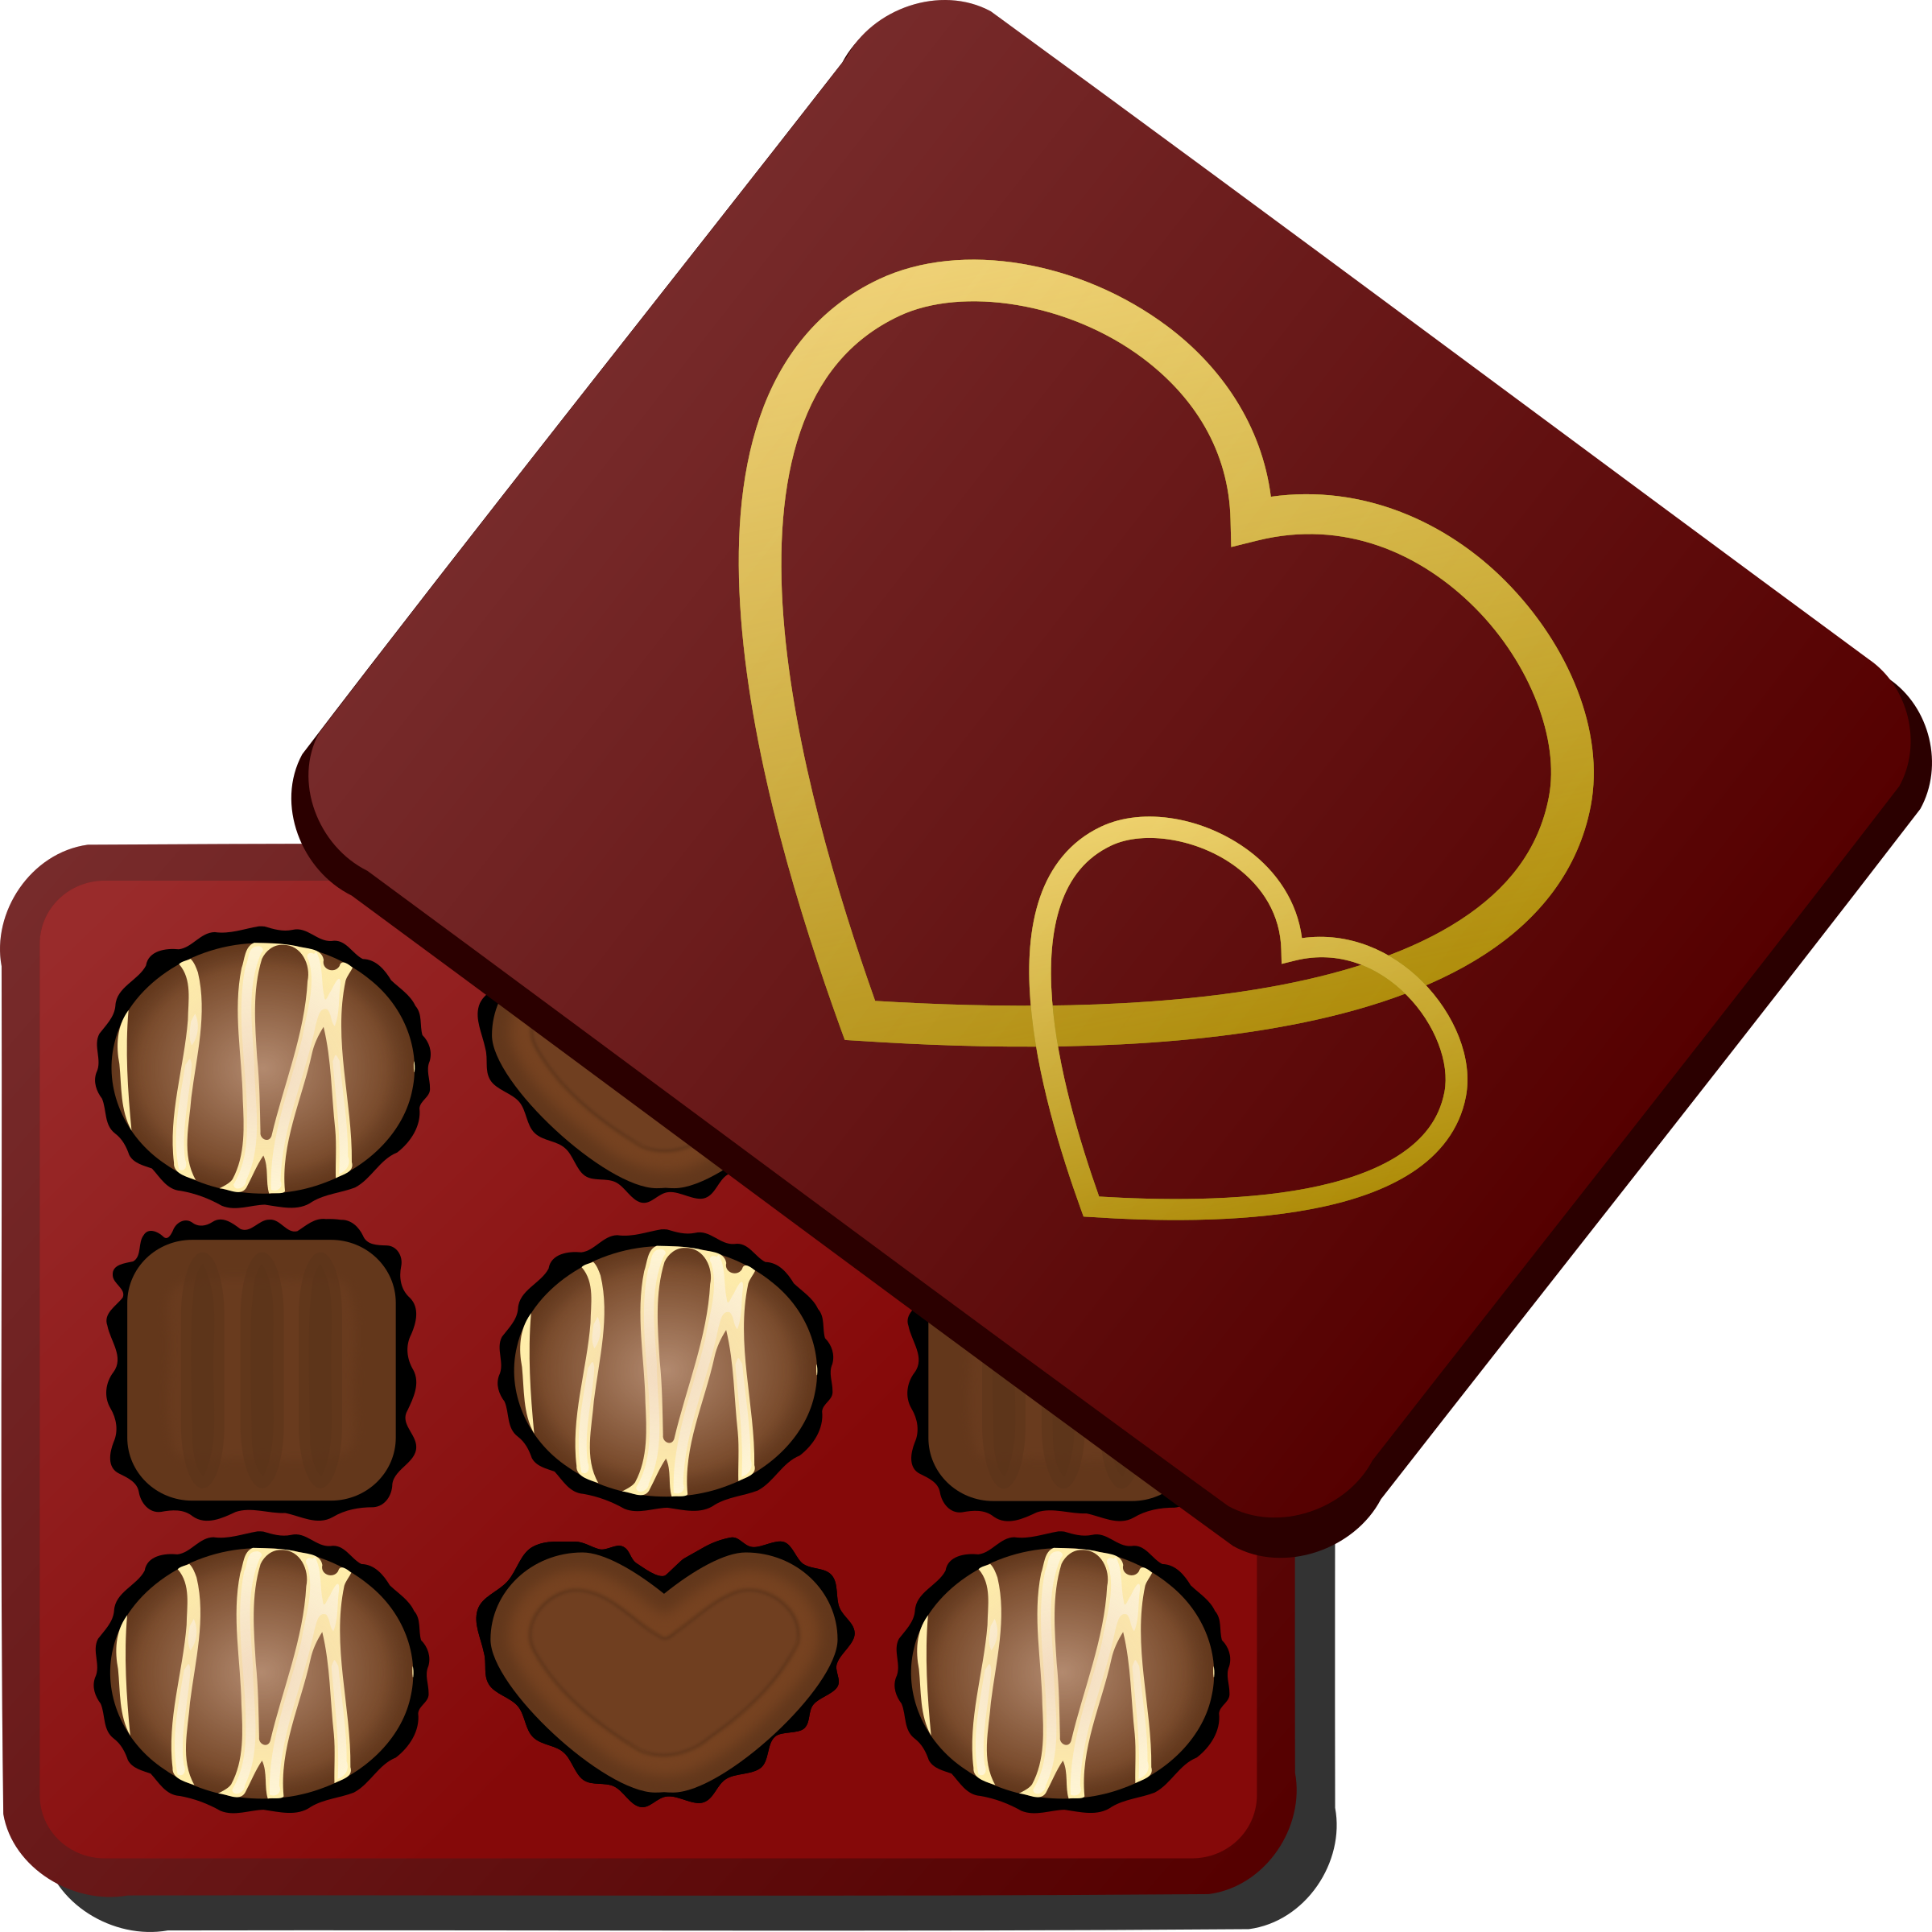 vector download Box clipart chocolates. Of big image png